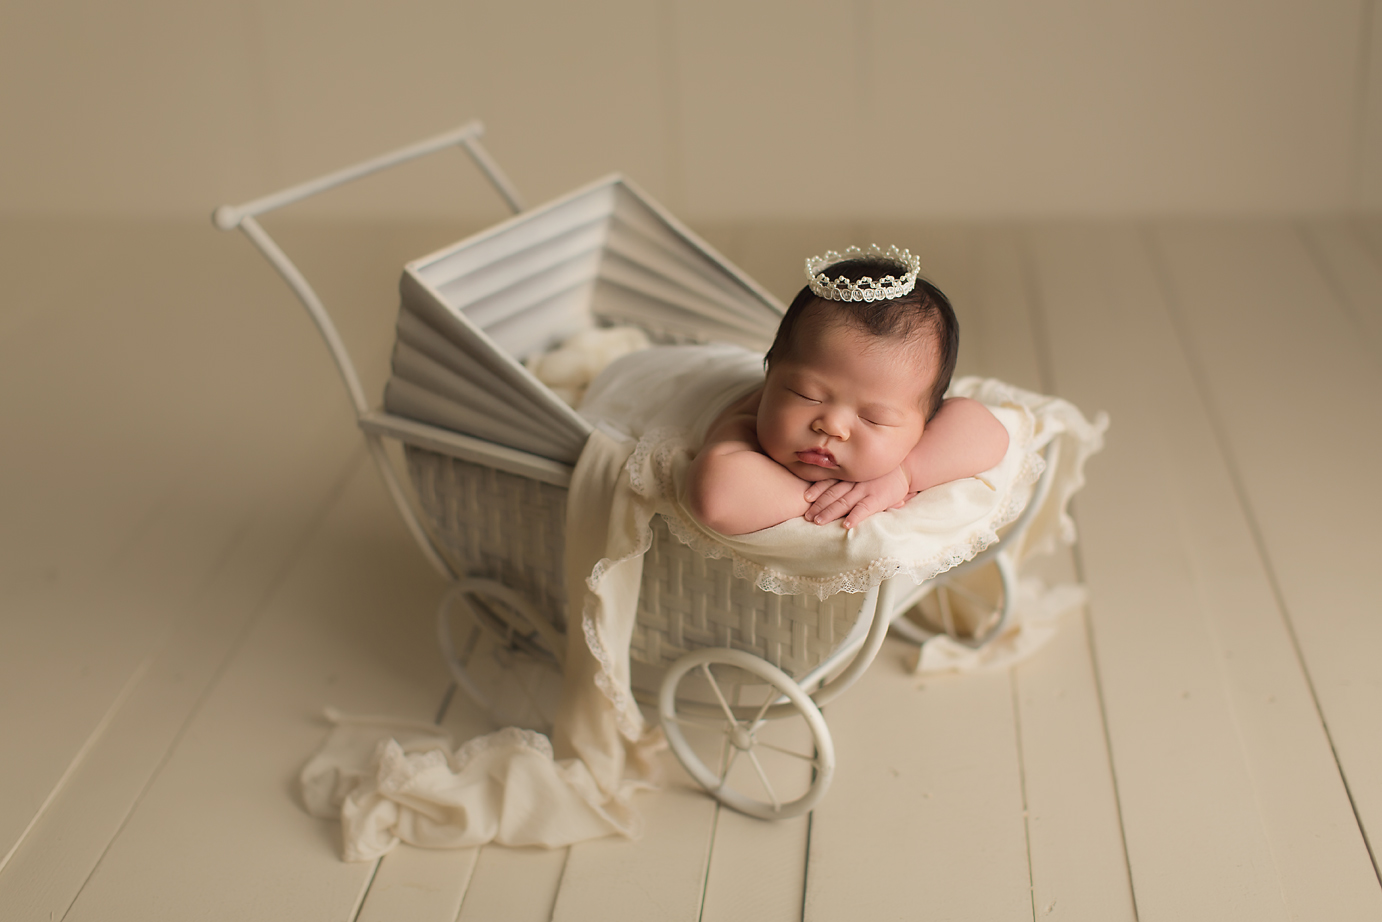 orange-county-newborn-photography-studio-baby-girl-white-vintage-pram-crown.jpg